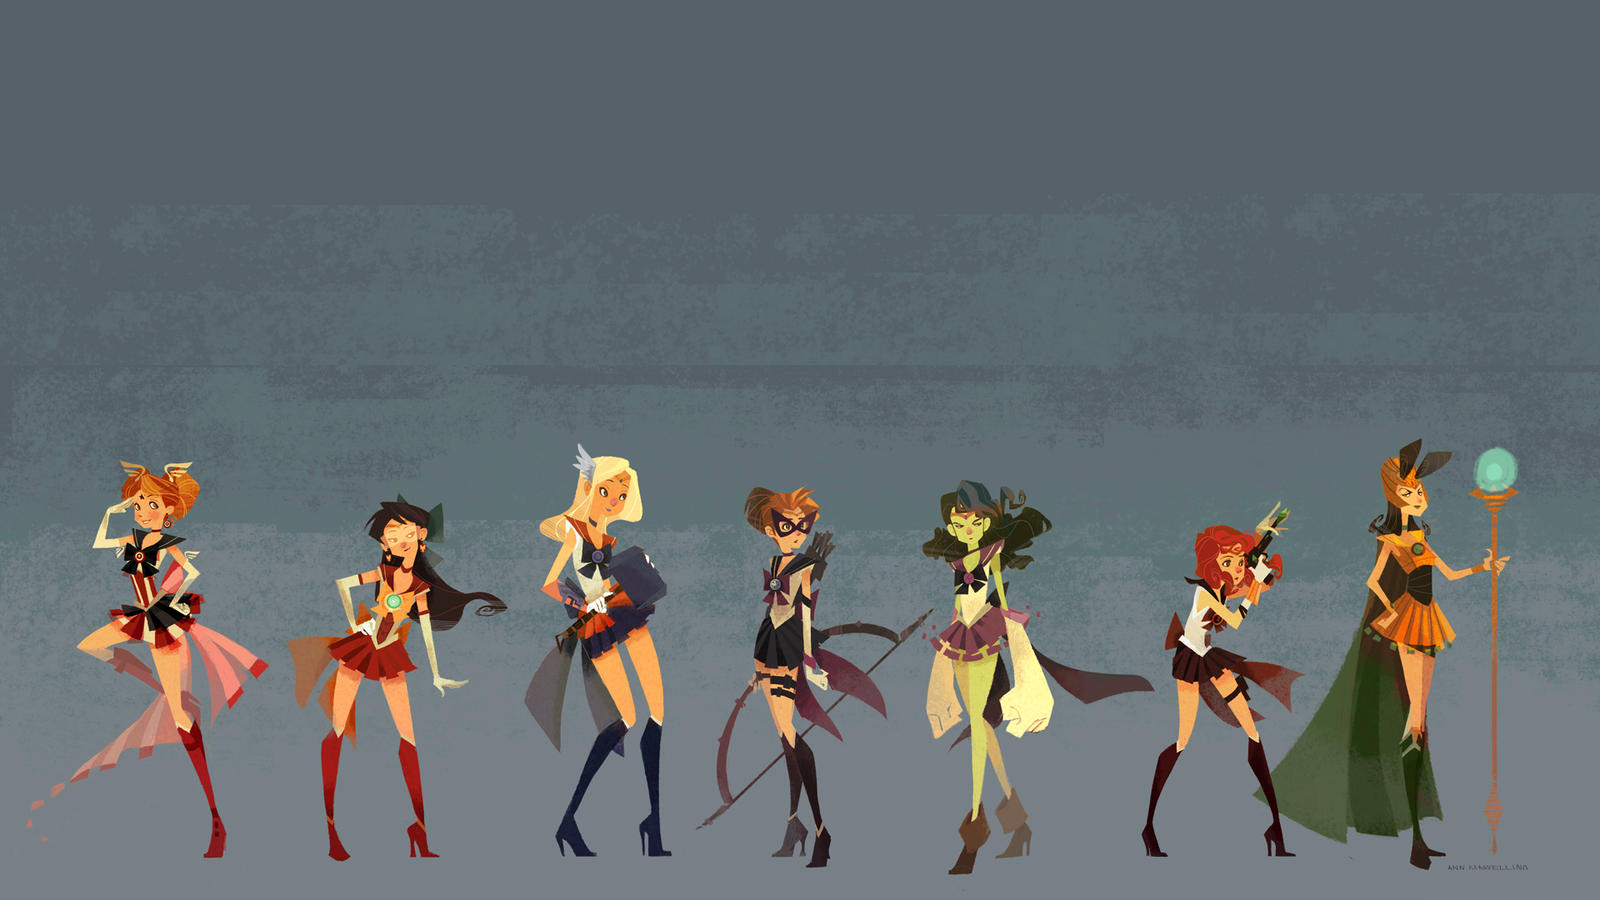 [Debate] If I could see Sailor Moon set in any other world/period it would be... Sailor_avengers_wallpaper_1920x1080_by_nna-d54e2p0